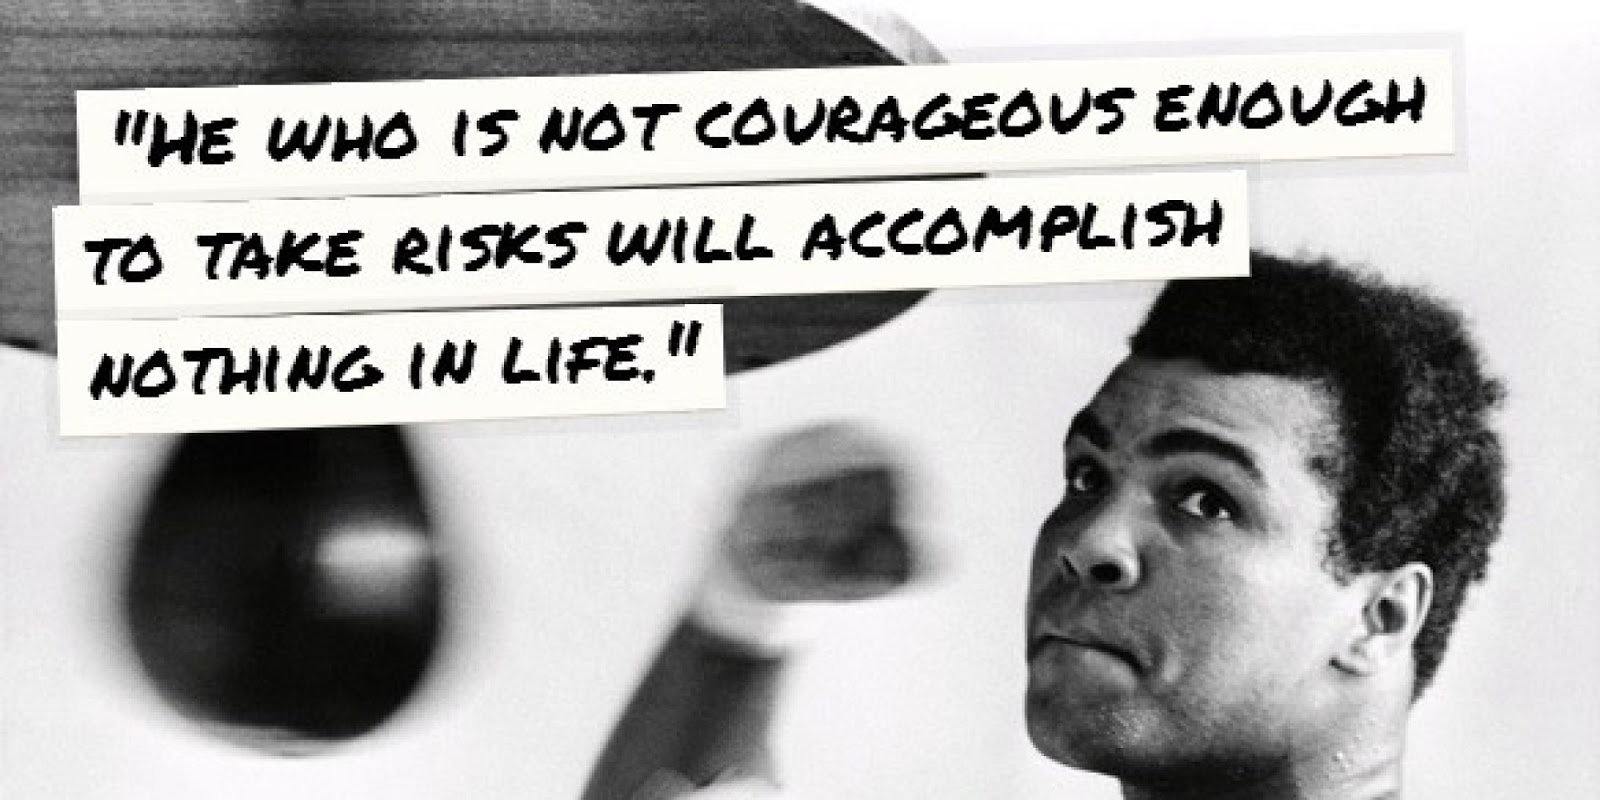 The Top 10 most inspiring Muhammad Ali quotes